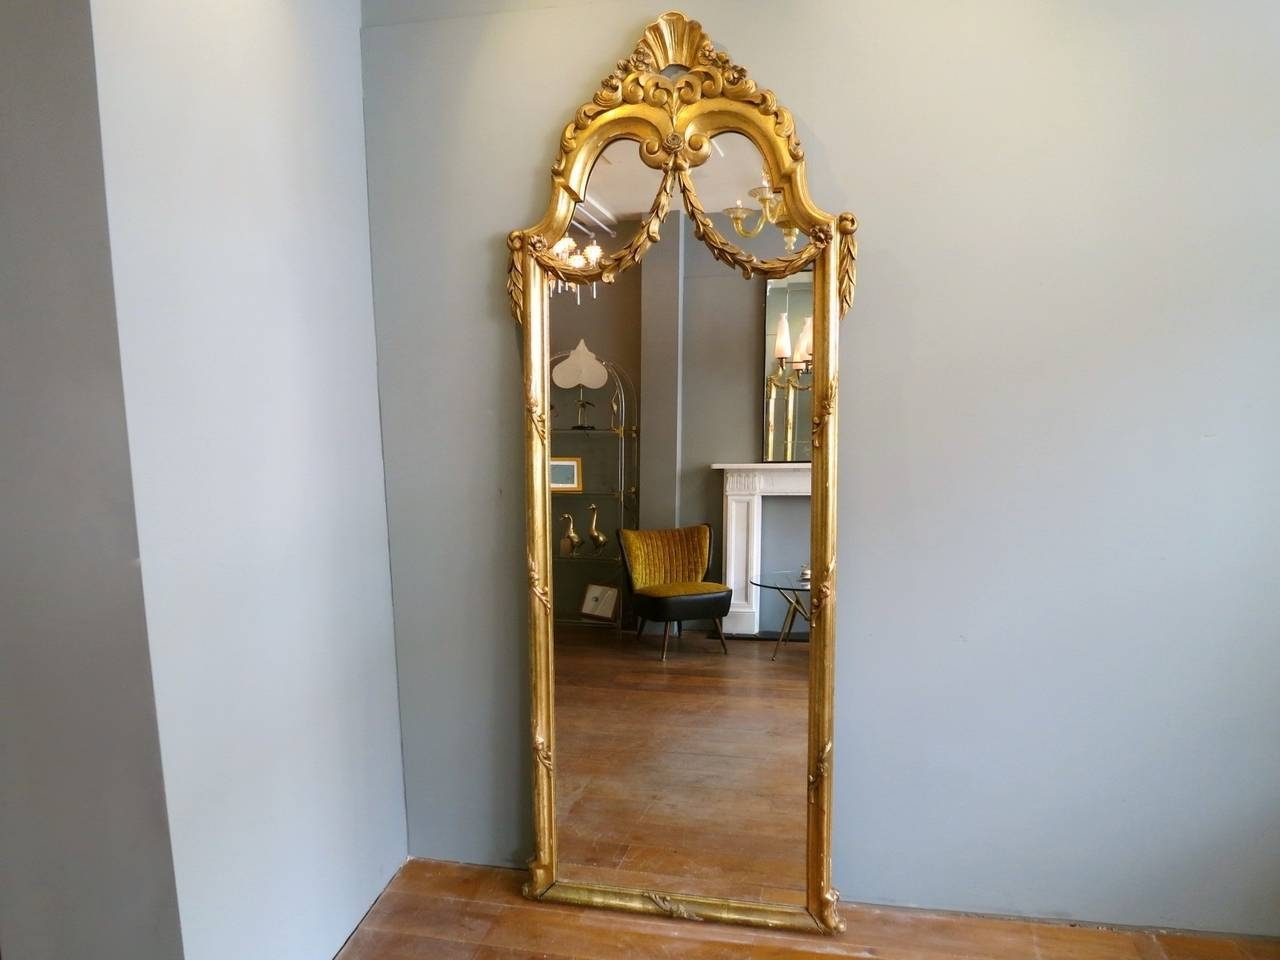 Antique French Gold Gilt Floor Standing Mirror At 1Stdibs inside French Floor Standing Mirrors (Image 13 of 25)